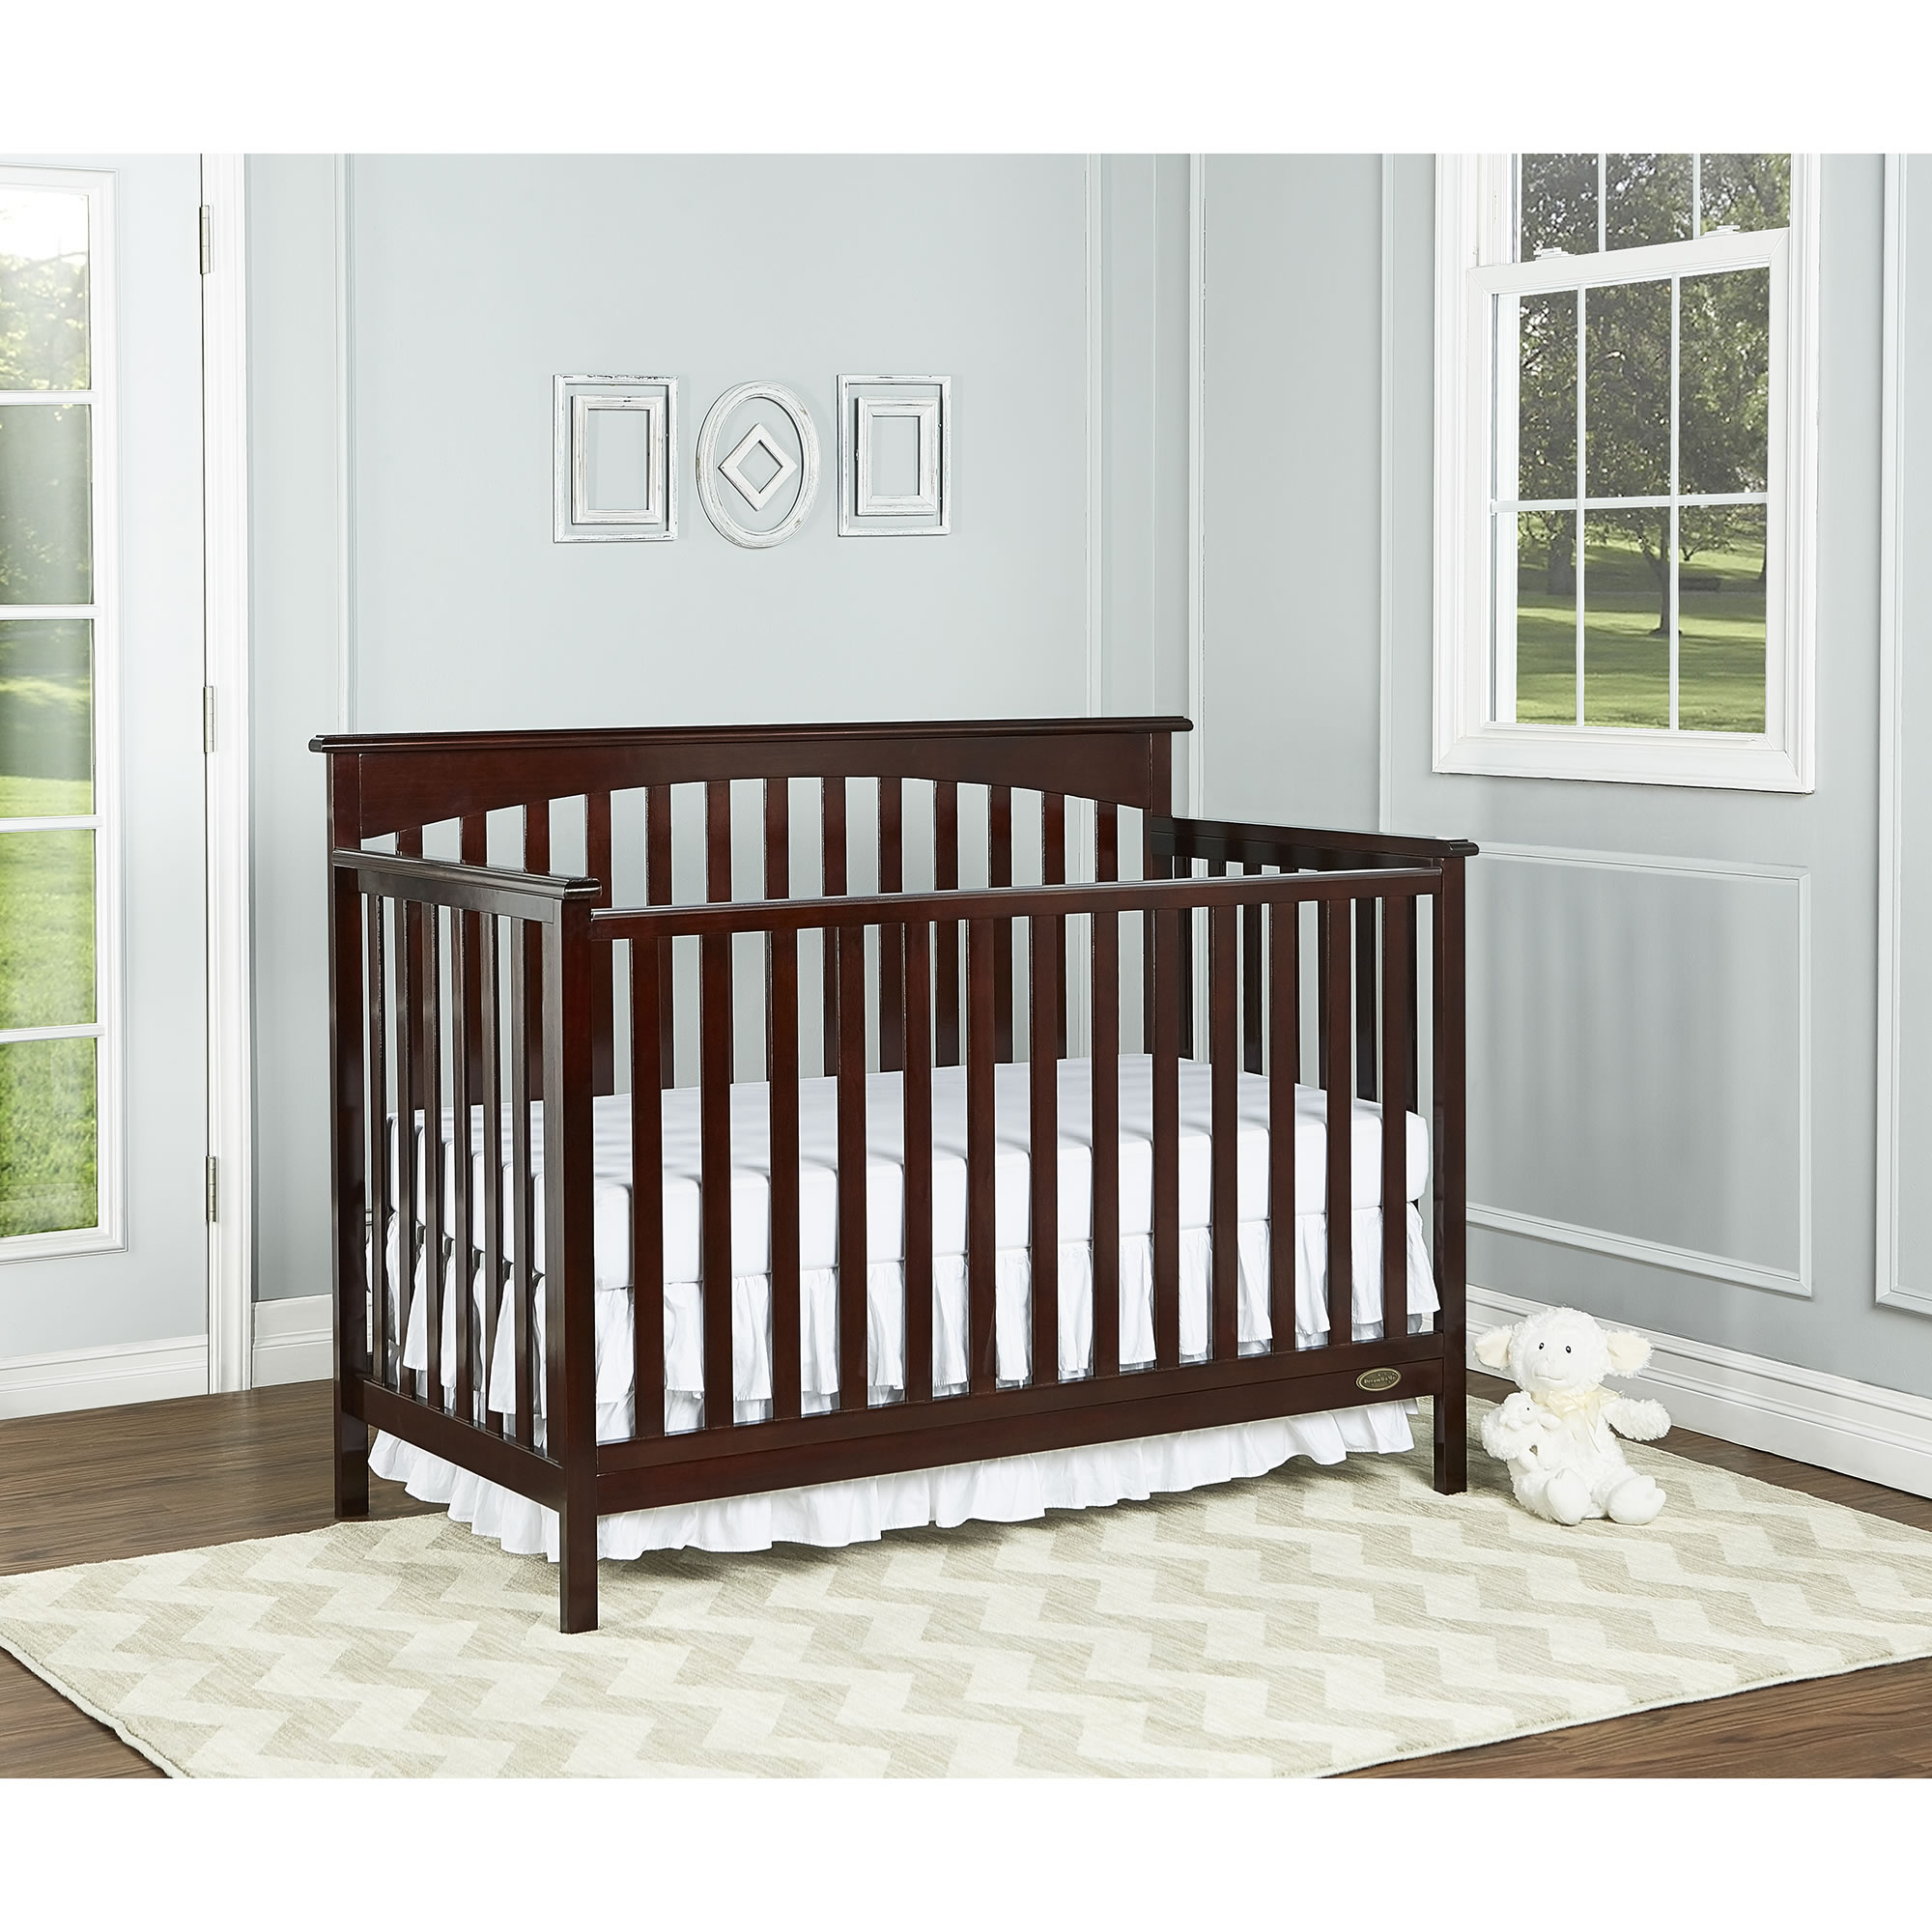 6655_NE_Java_Davenport_5_in_1_Convertible-Crib